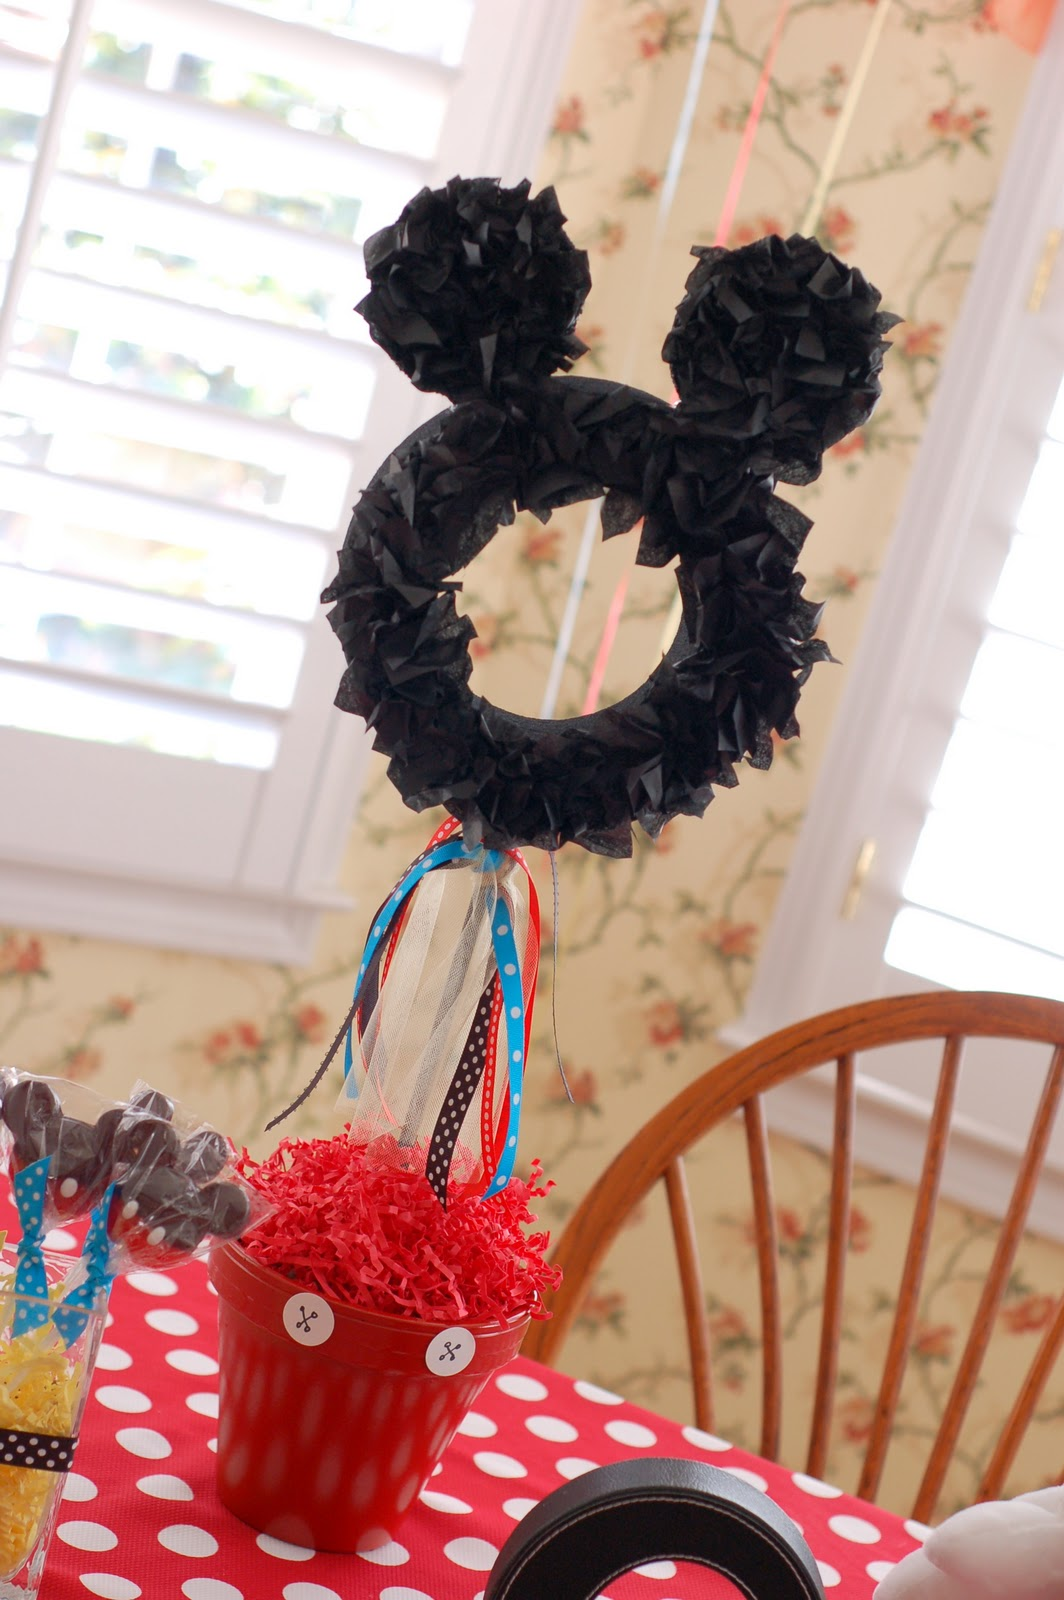 Mickey Mouse Ribbon and Tissue Party Topiary Centerpiece